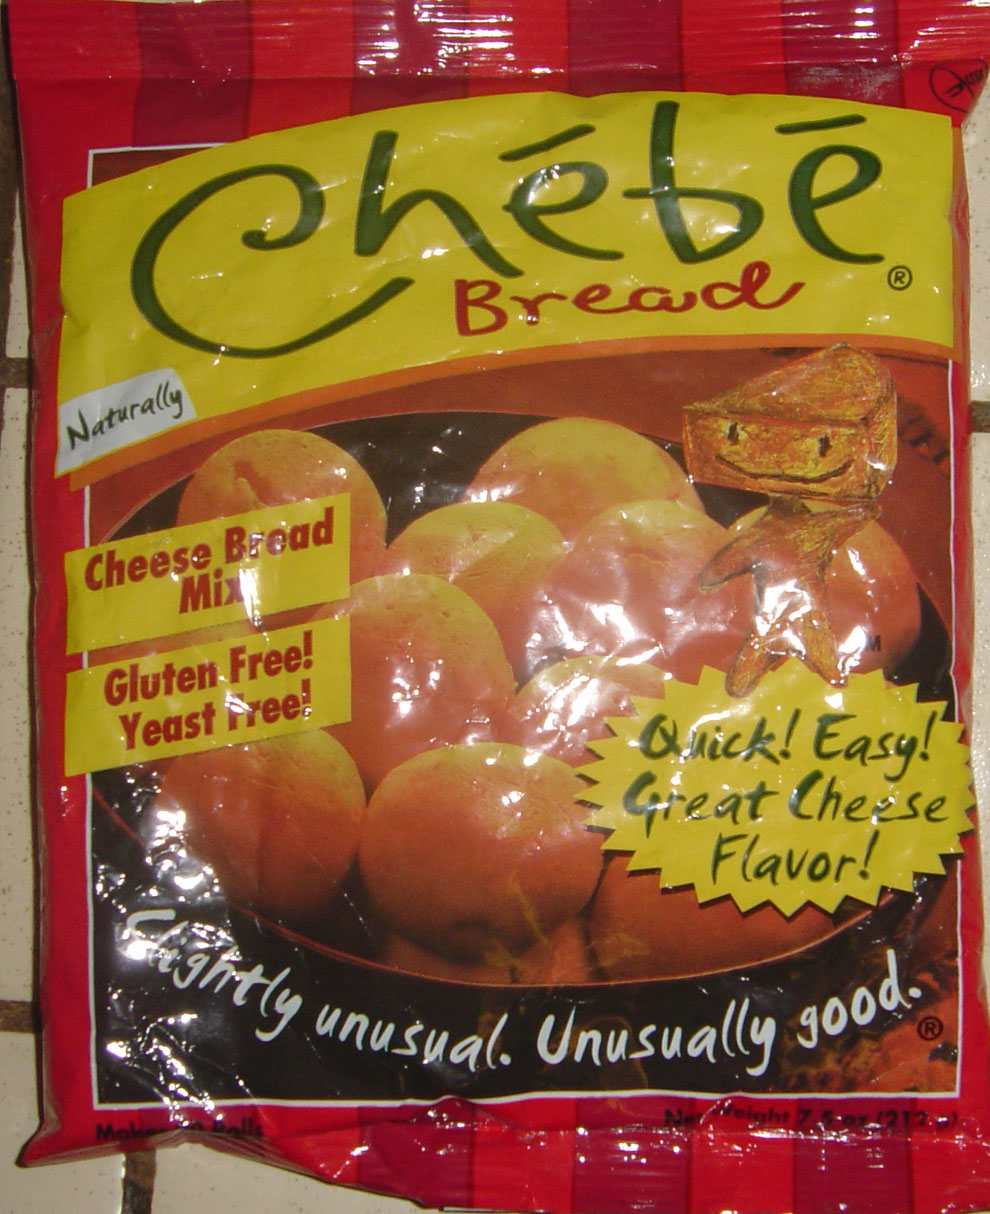 Chebe Cheese Bread Mix